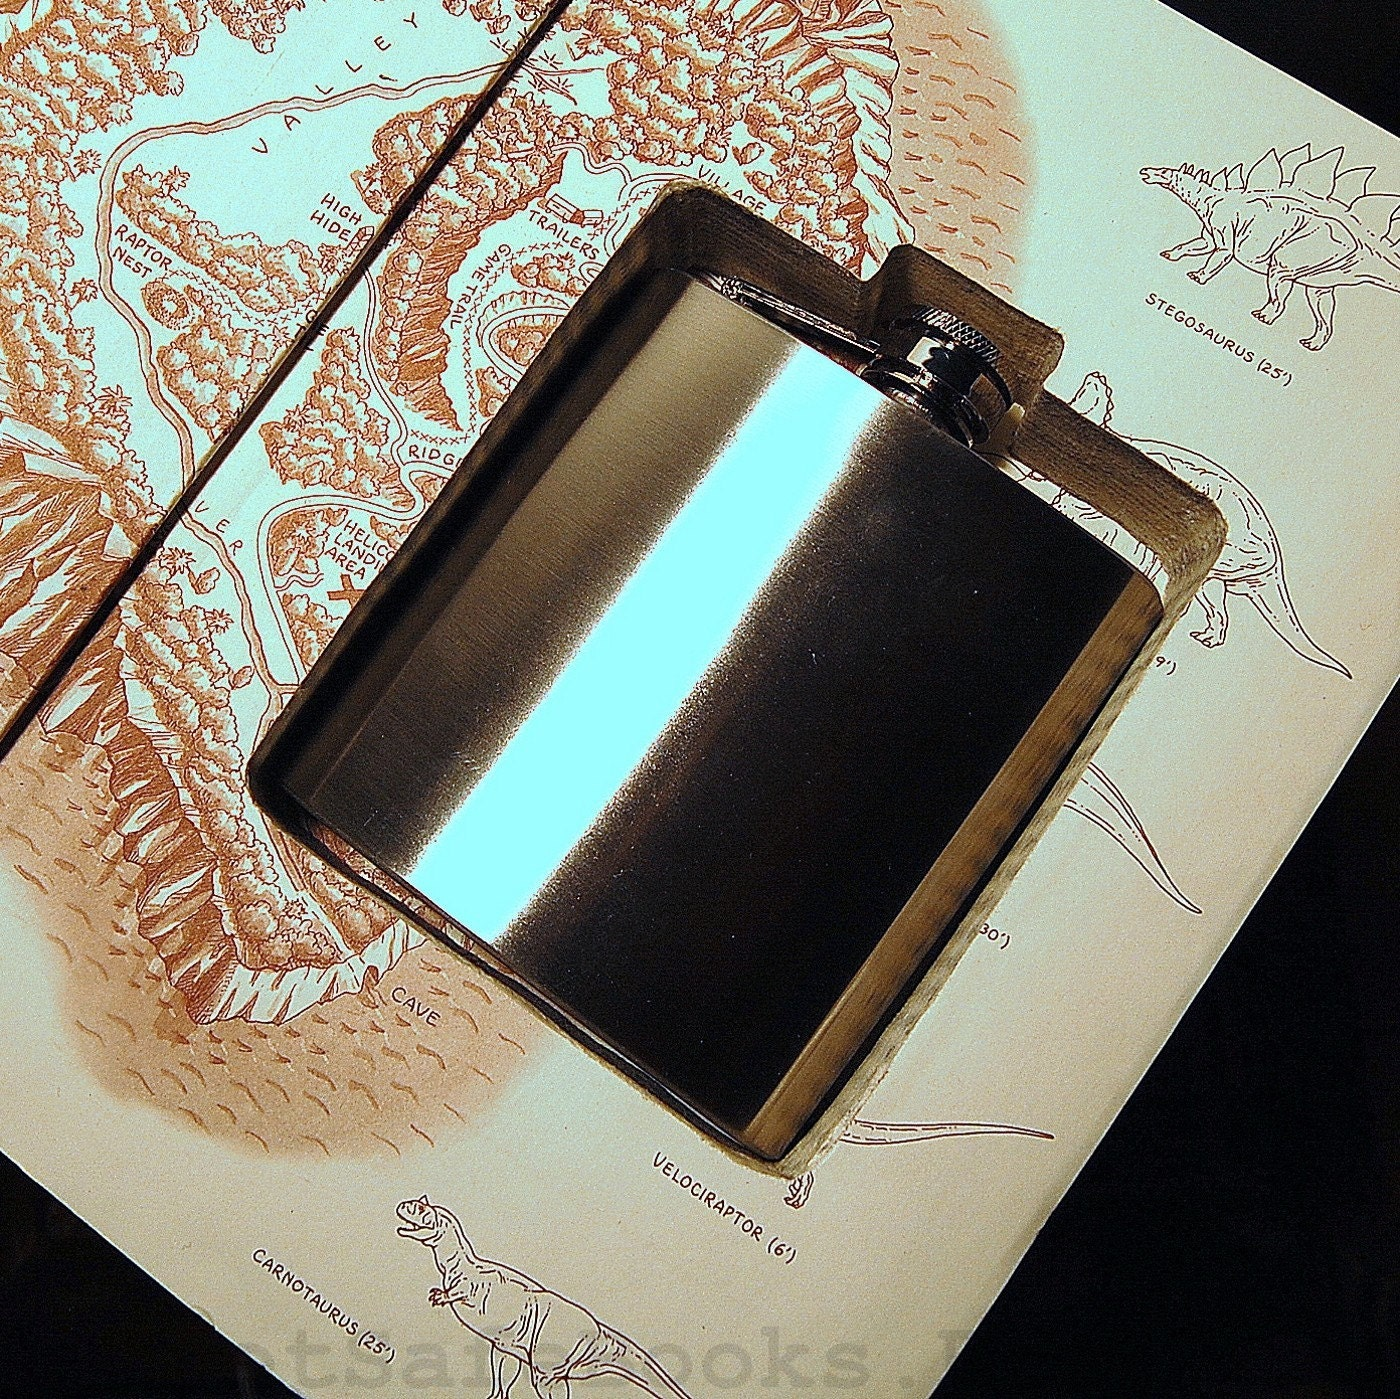 Hollow Book Flask Safe (Flask Included) The Lost World by Michael Crichton